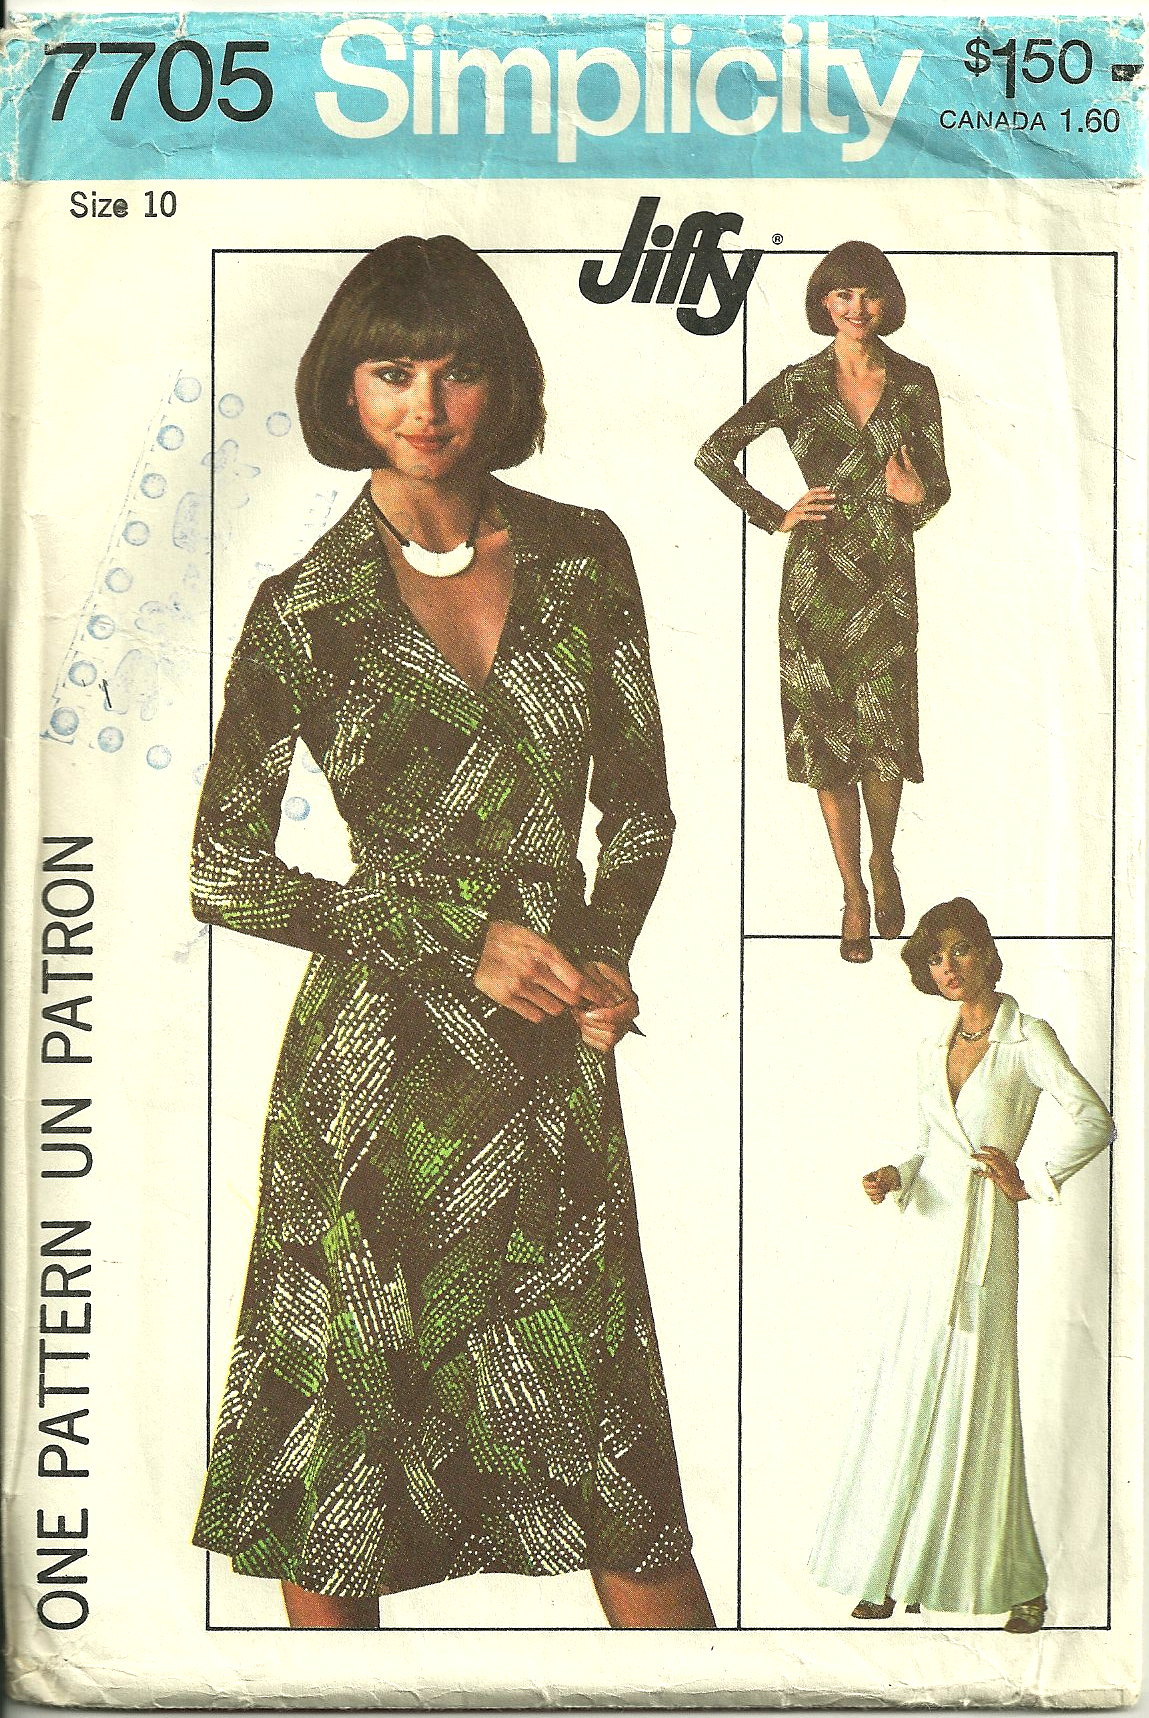 Wrapping my mind around a new dress for fall fiftydresses i really dont think there is anything jiffy about this pattern jeuxipadfo Choice Image